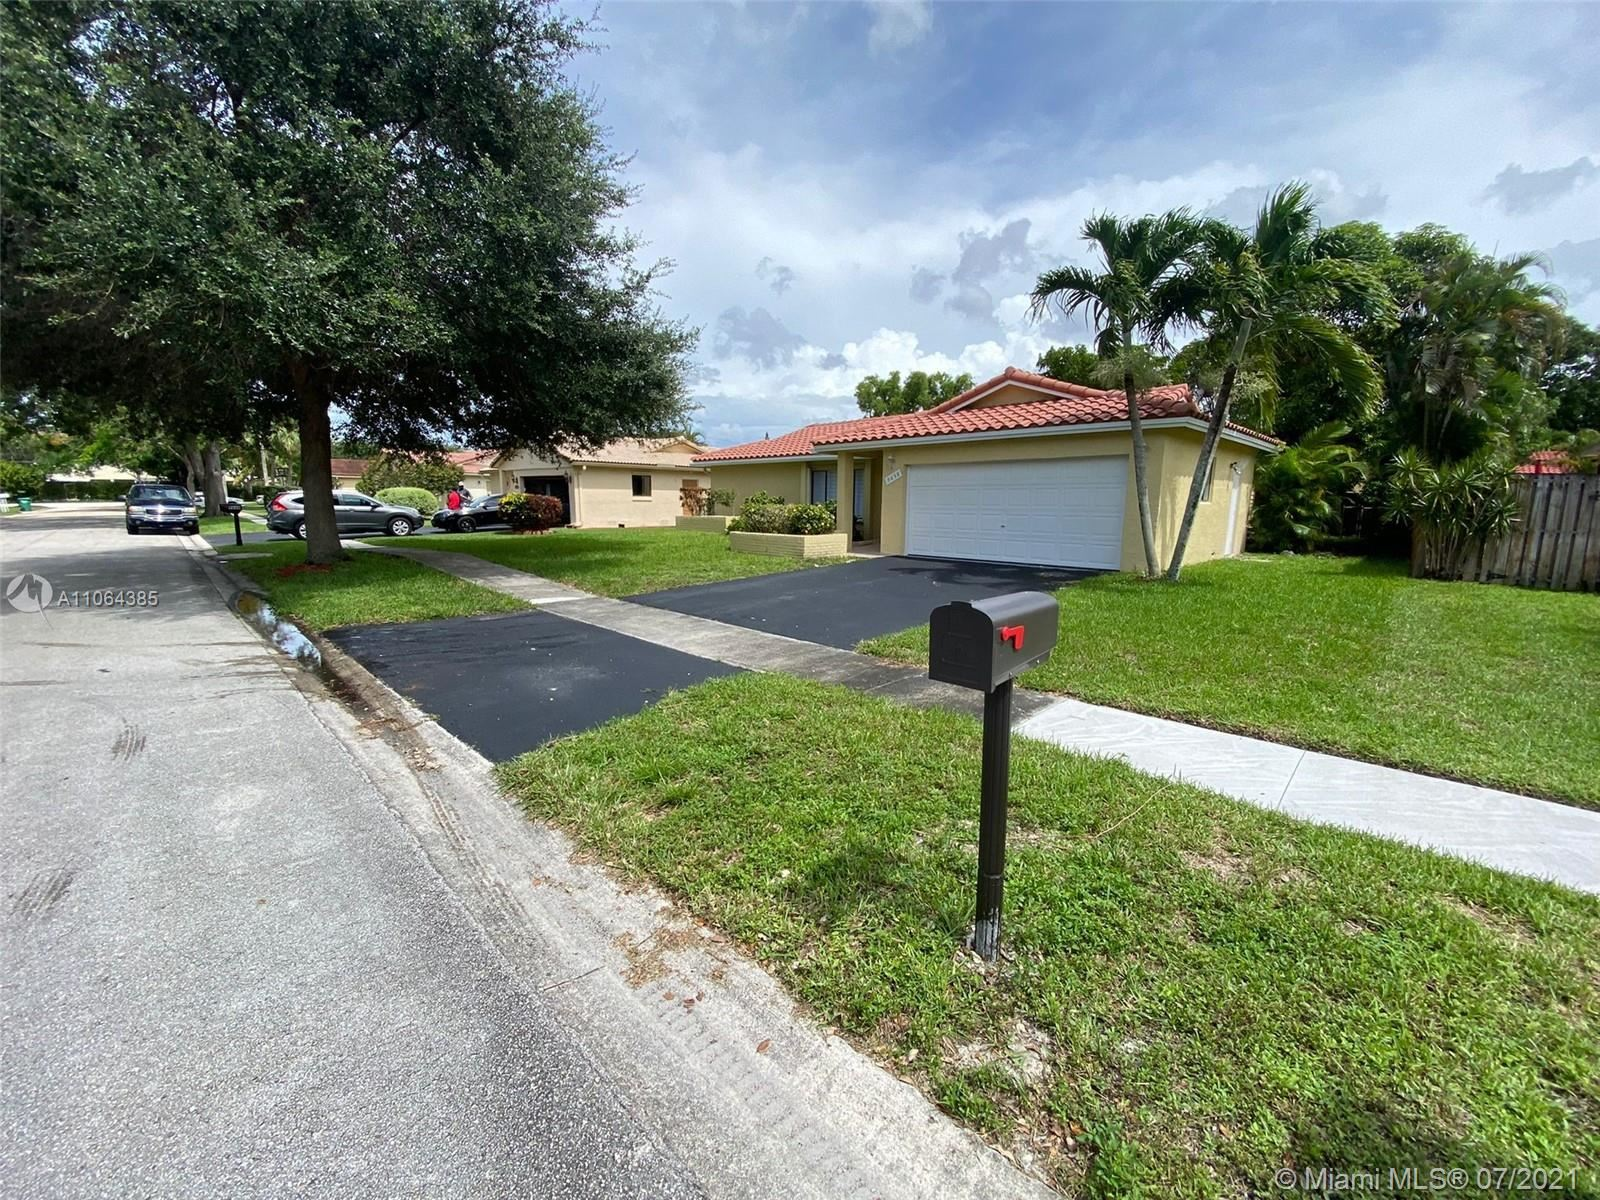 9658 NW 28th Ct, Coral Springs, FL 33065 - #: A11064385